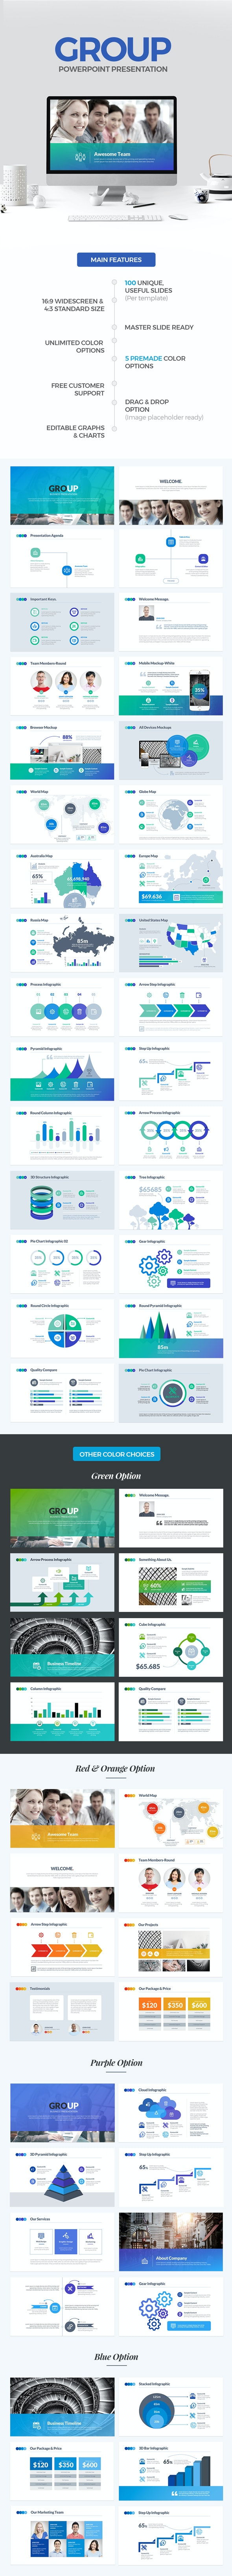 Group PowerPoint Template - PowerPoint Templates Presentation Templates